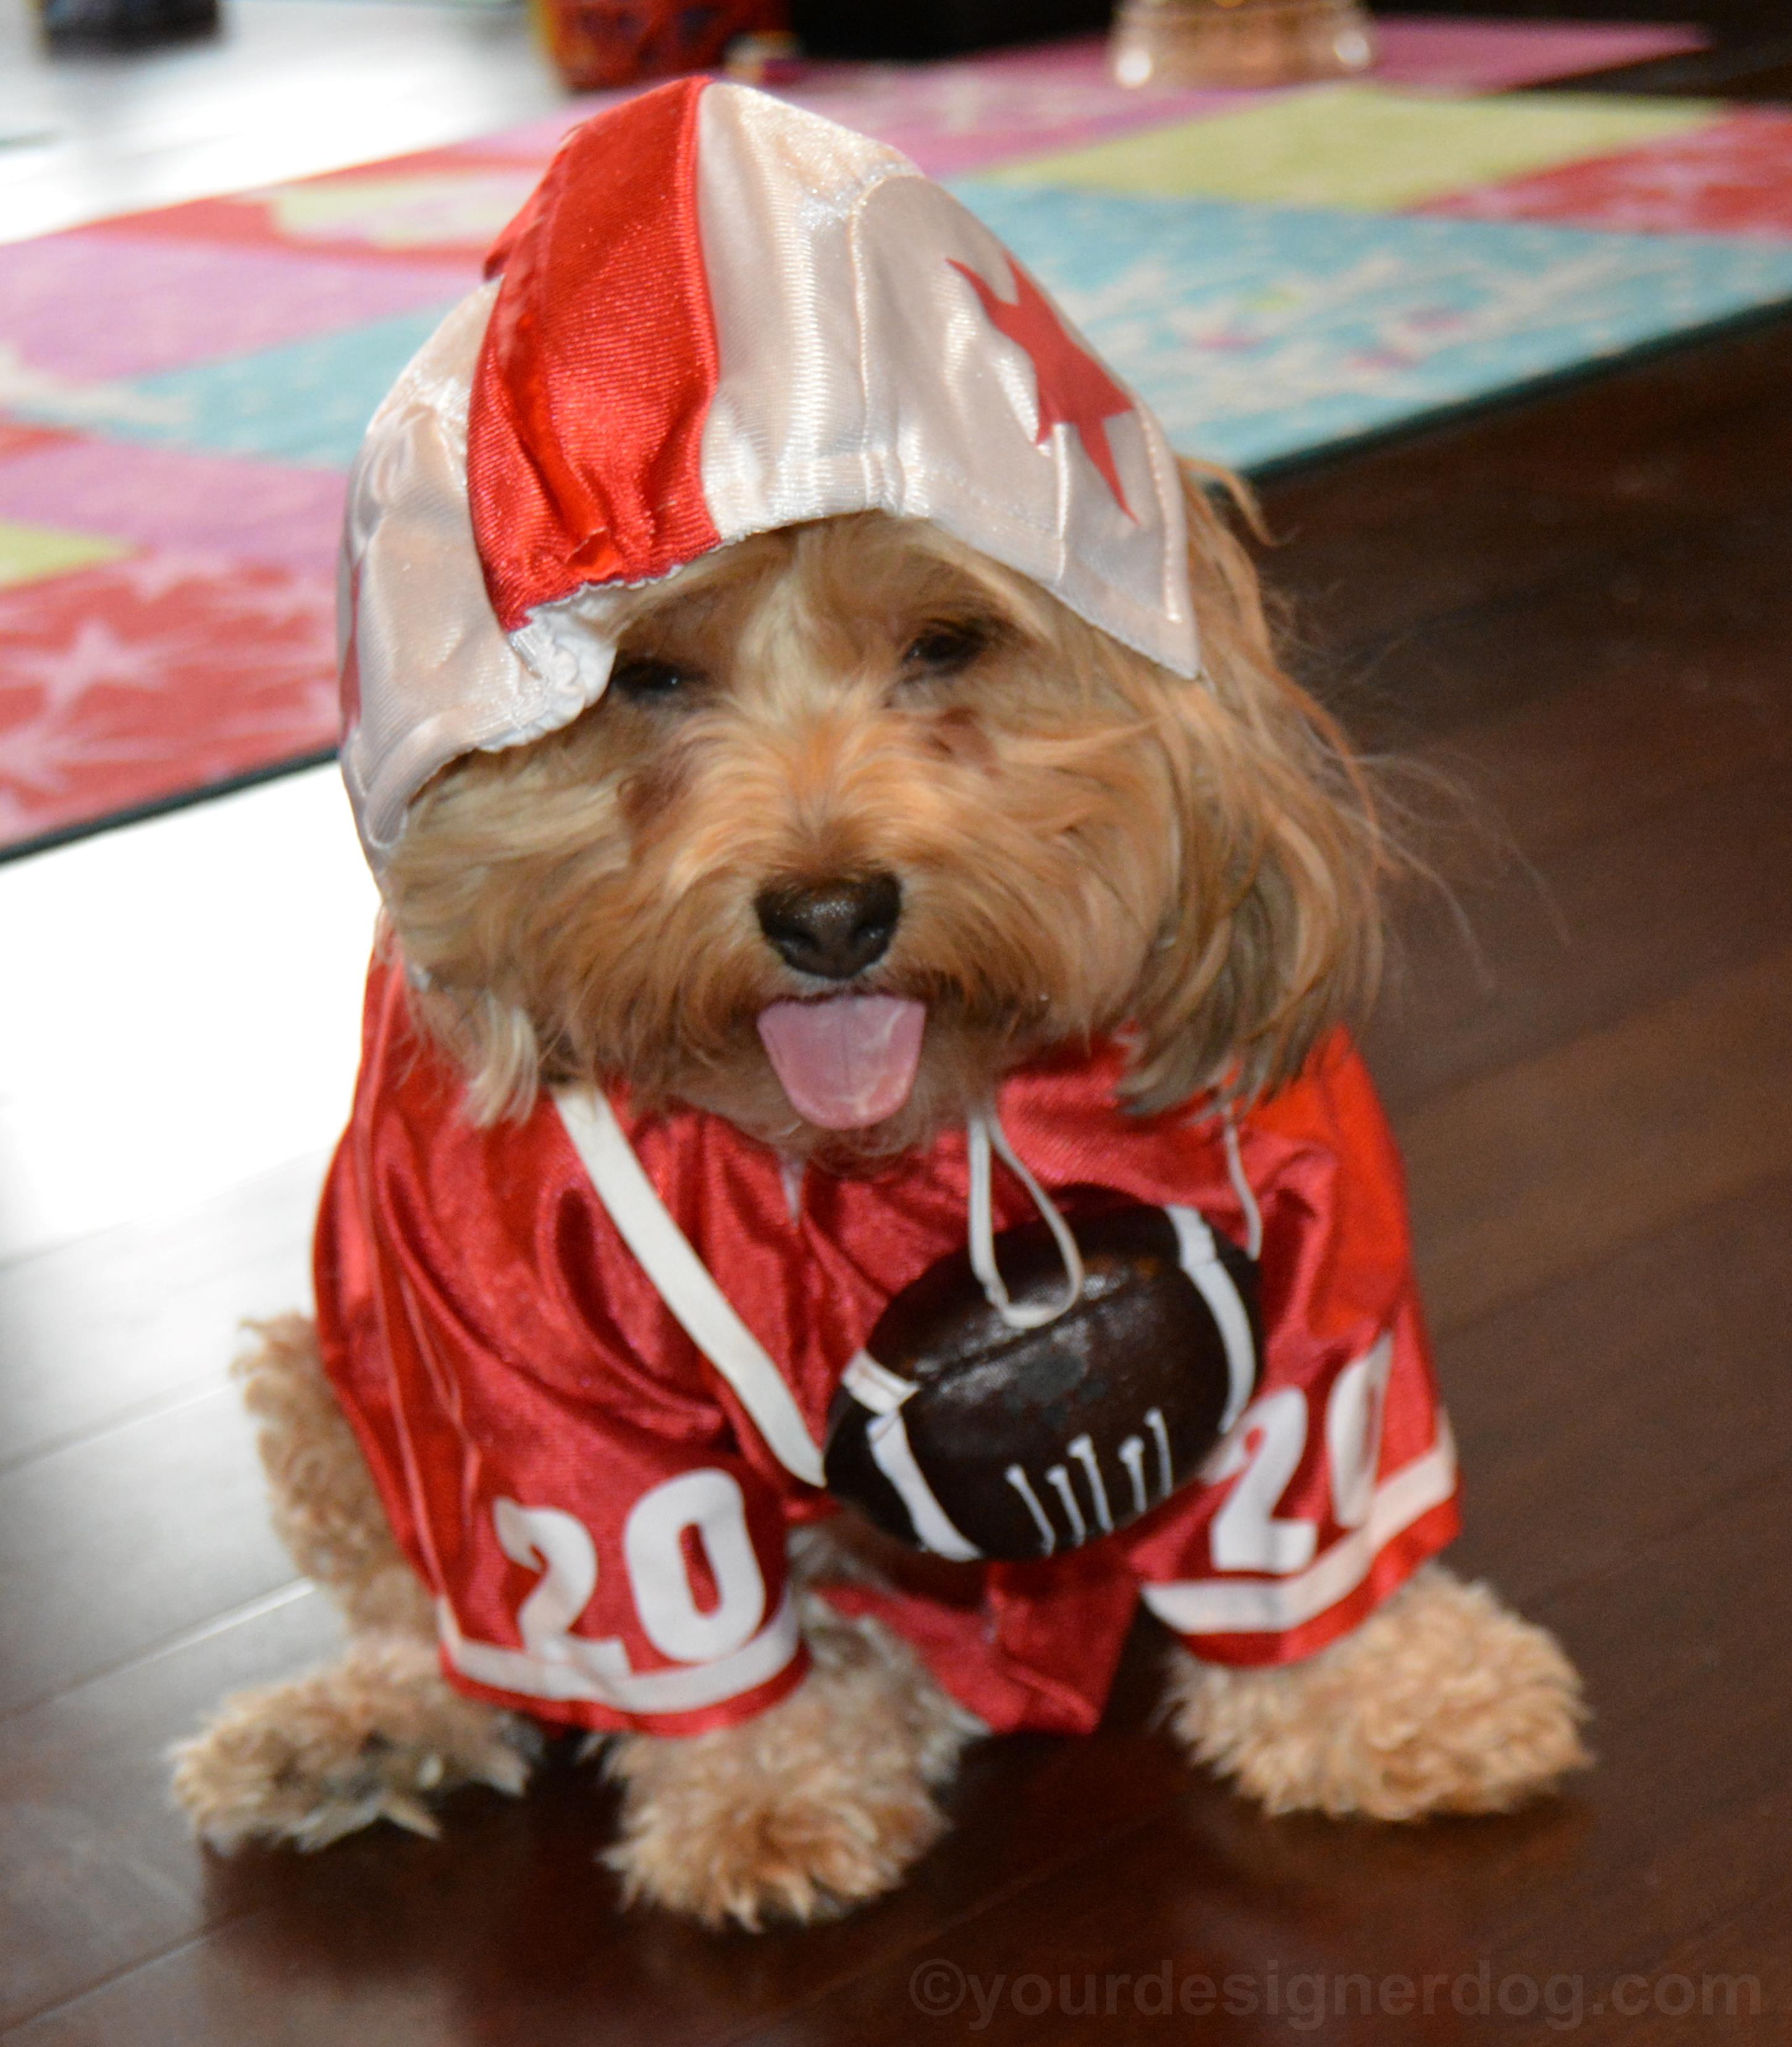 dogs, designer dogs, yorkipoo, yorkie poo, bloopers, football, uniform, costume